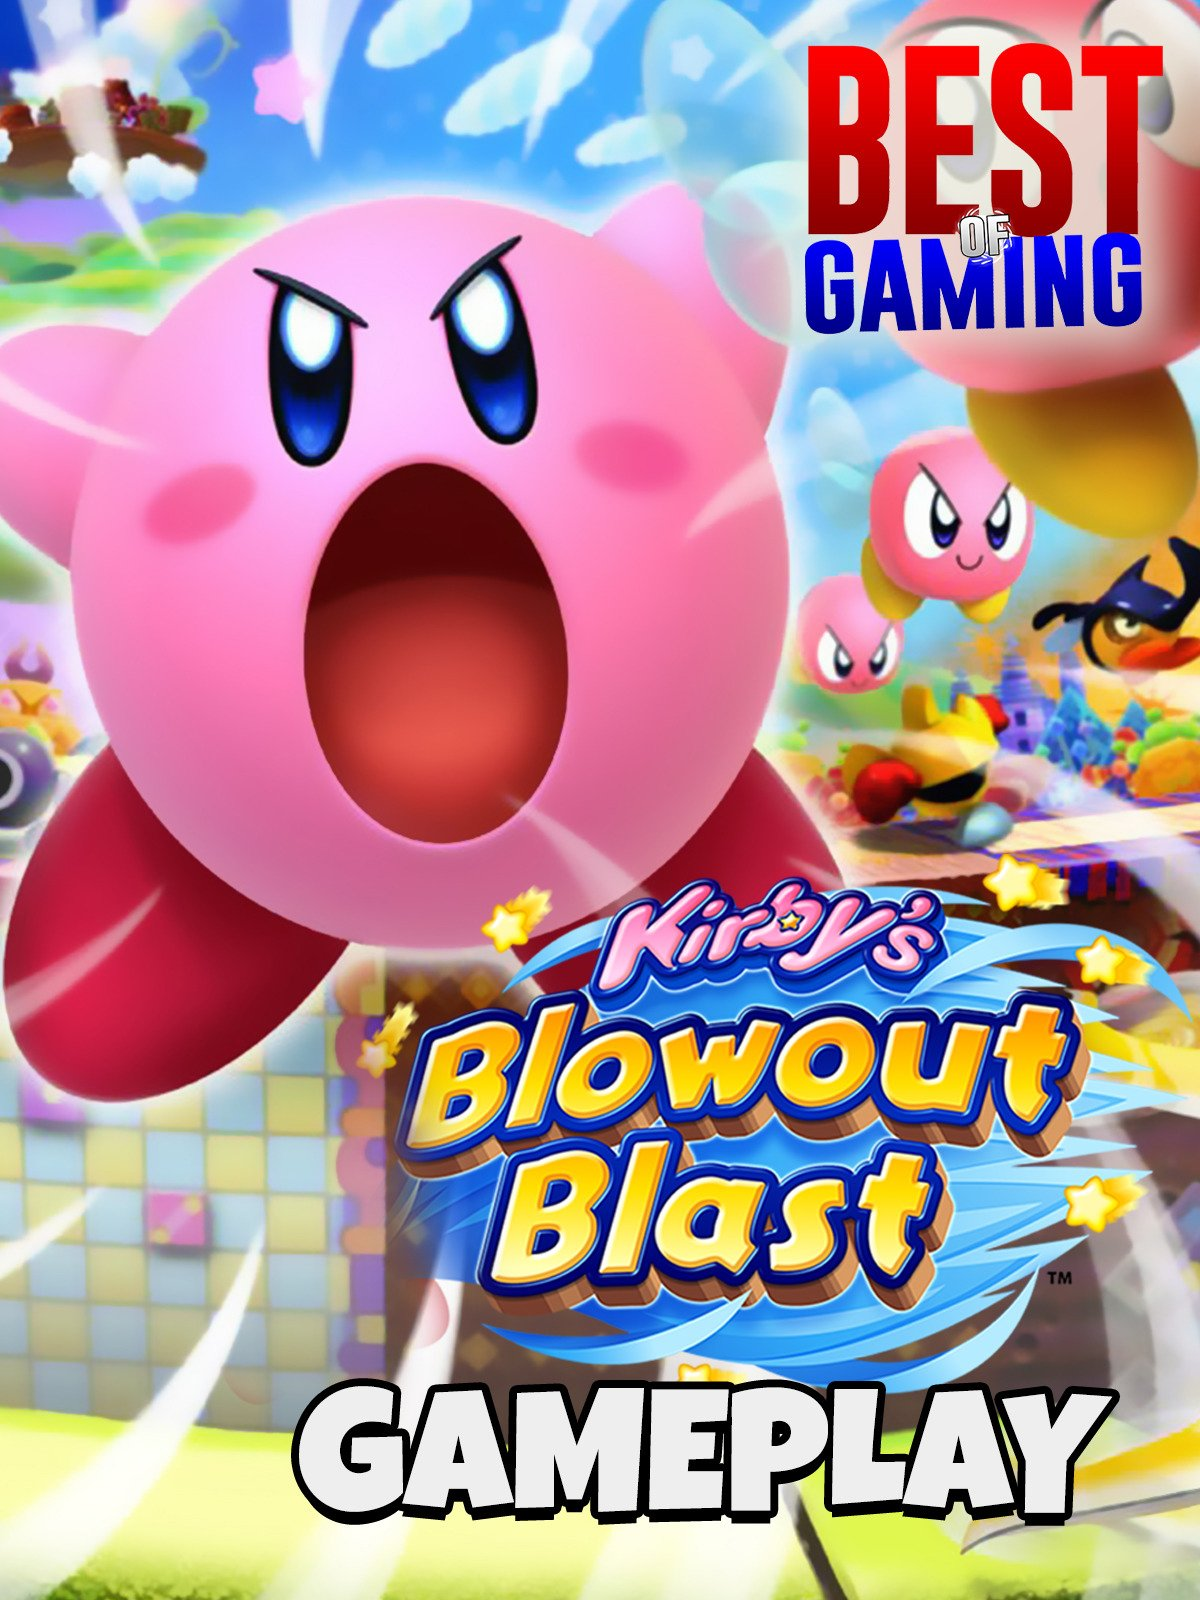 Clip: Kirby's Blowout Blast Gameplay